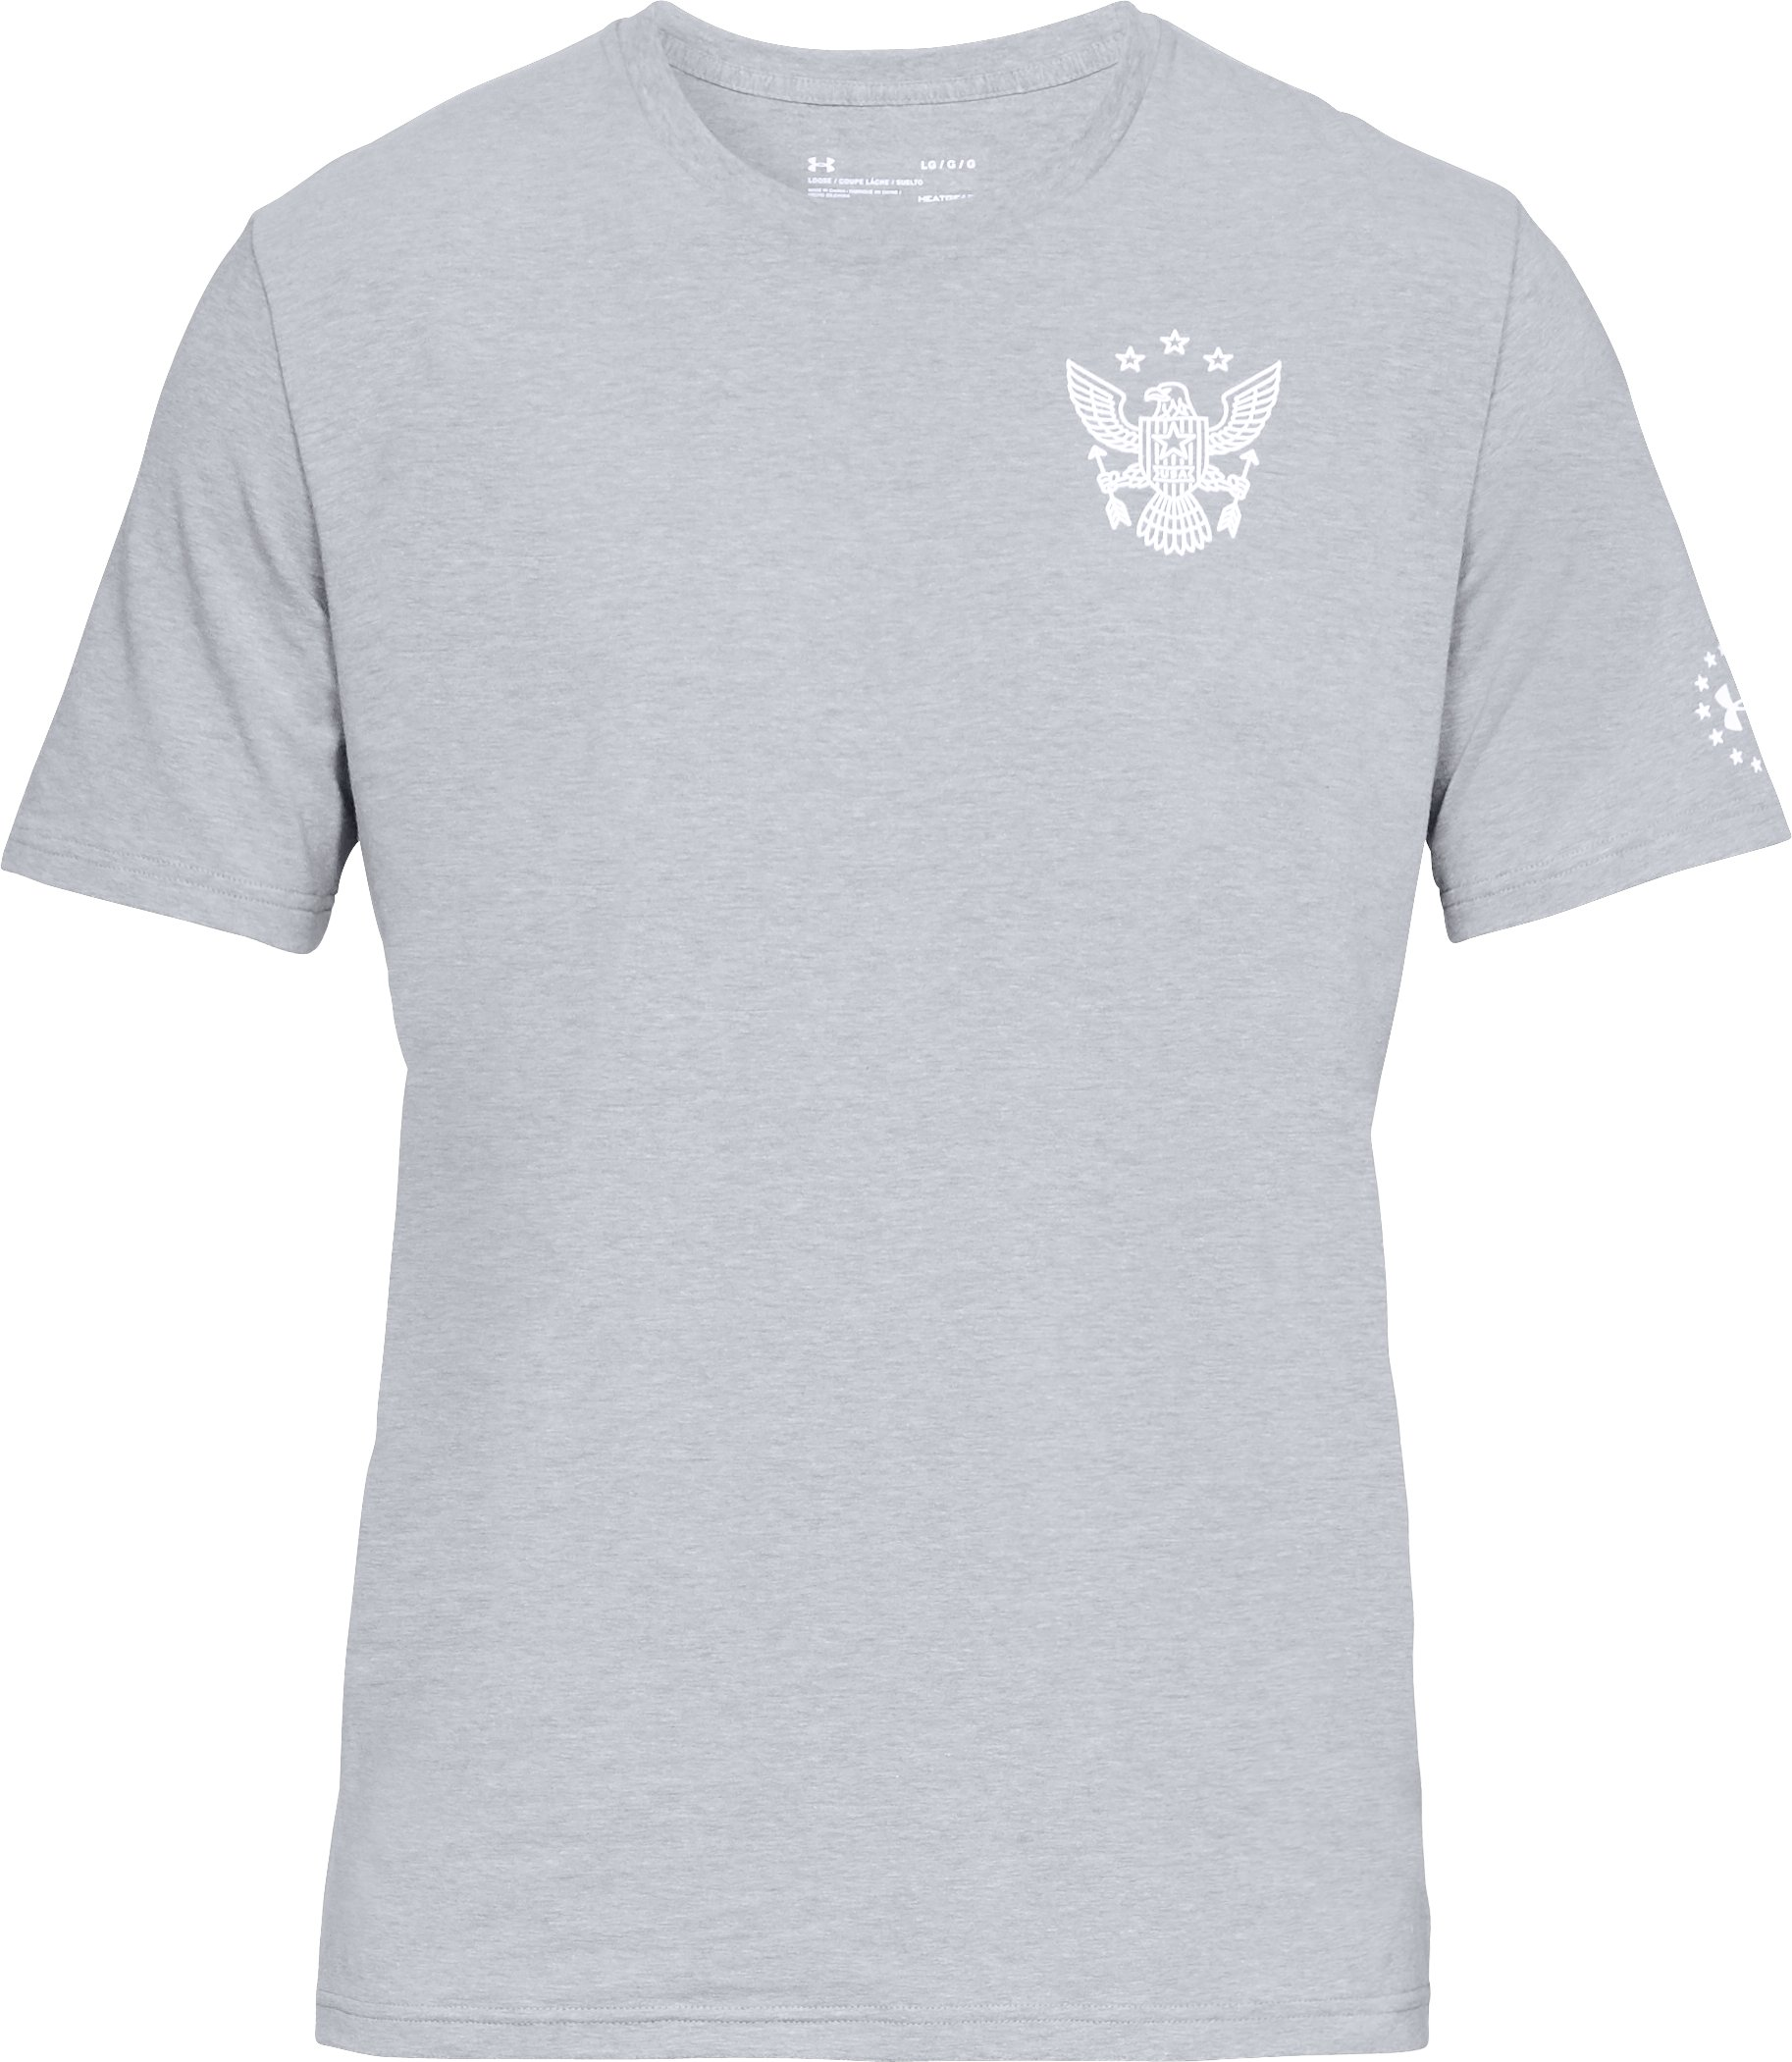 Men's UA Freedom Eagle Arrows T-Shirt, STEEL LIGHT HEATHER,